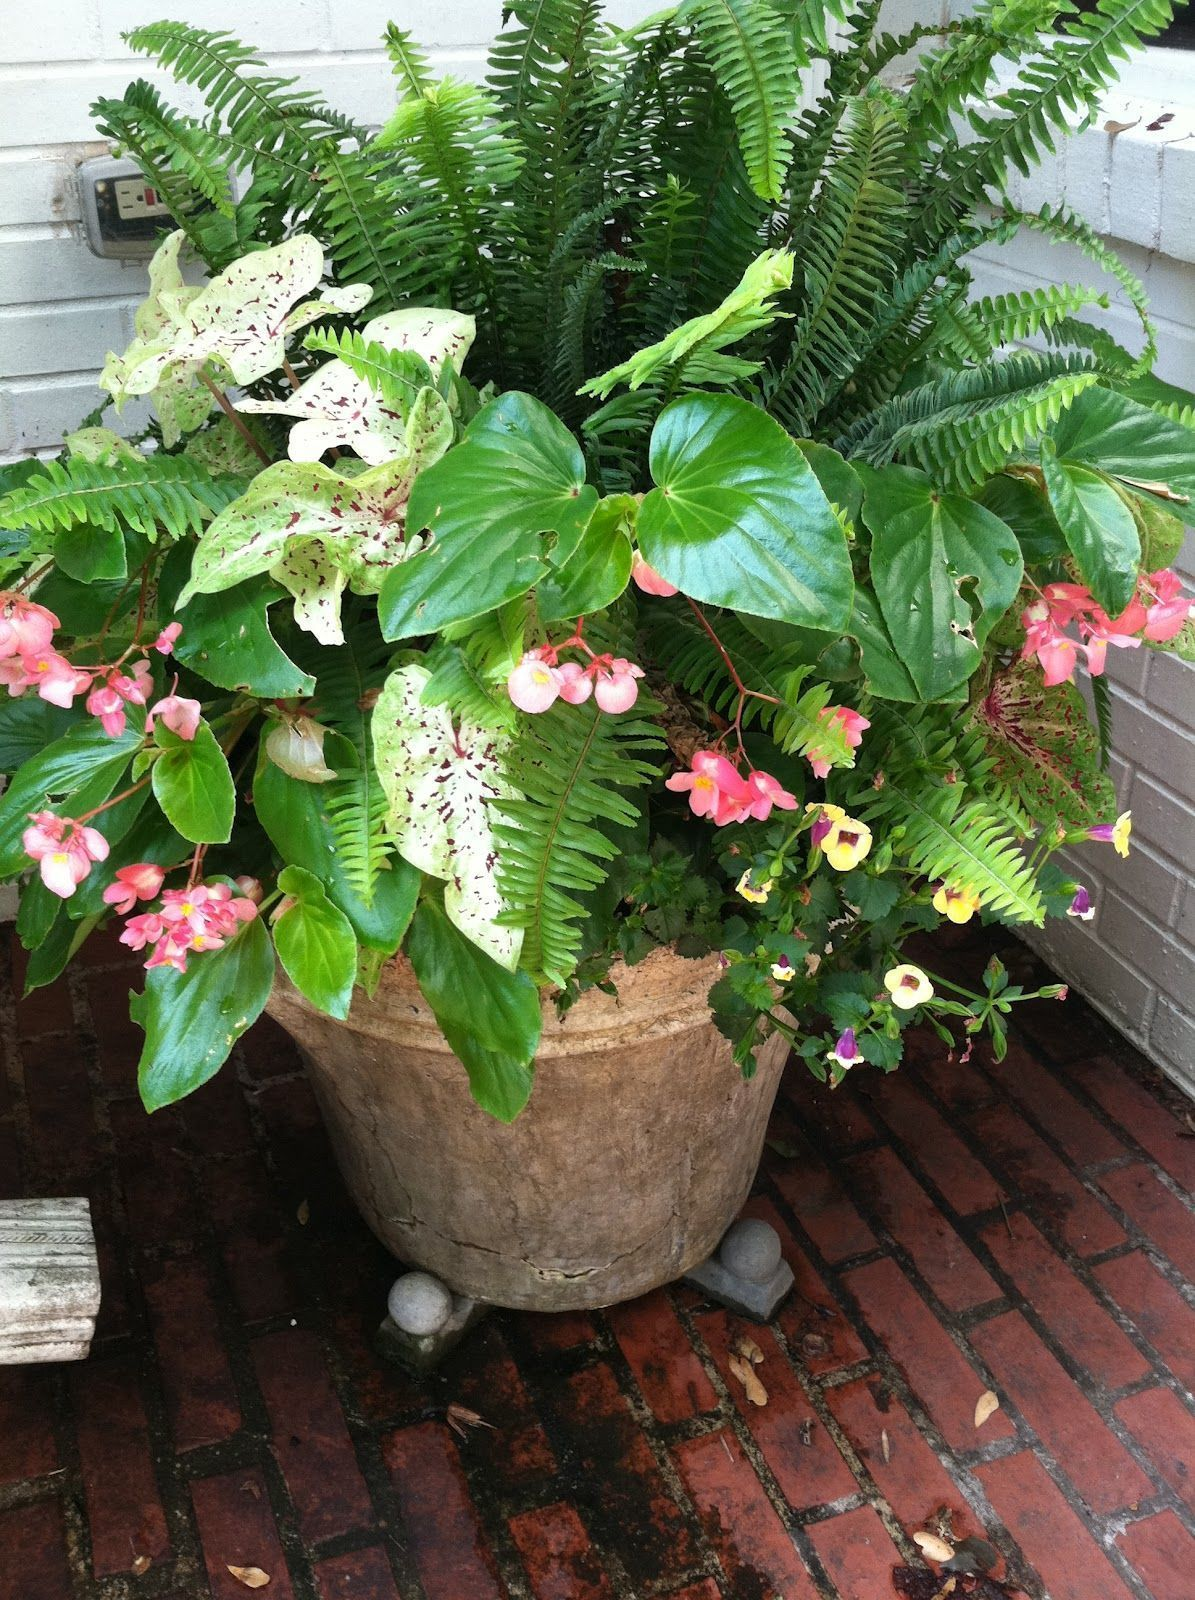 Container Gardening of Atlanta, llc! Please email us at containergardeningllc@ for a consultation!to Container Gardening of Atlanta, llc! Please email us at containergardeningllc@ for a consultation!